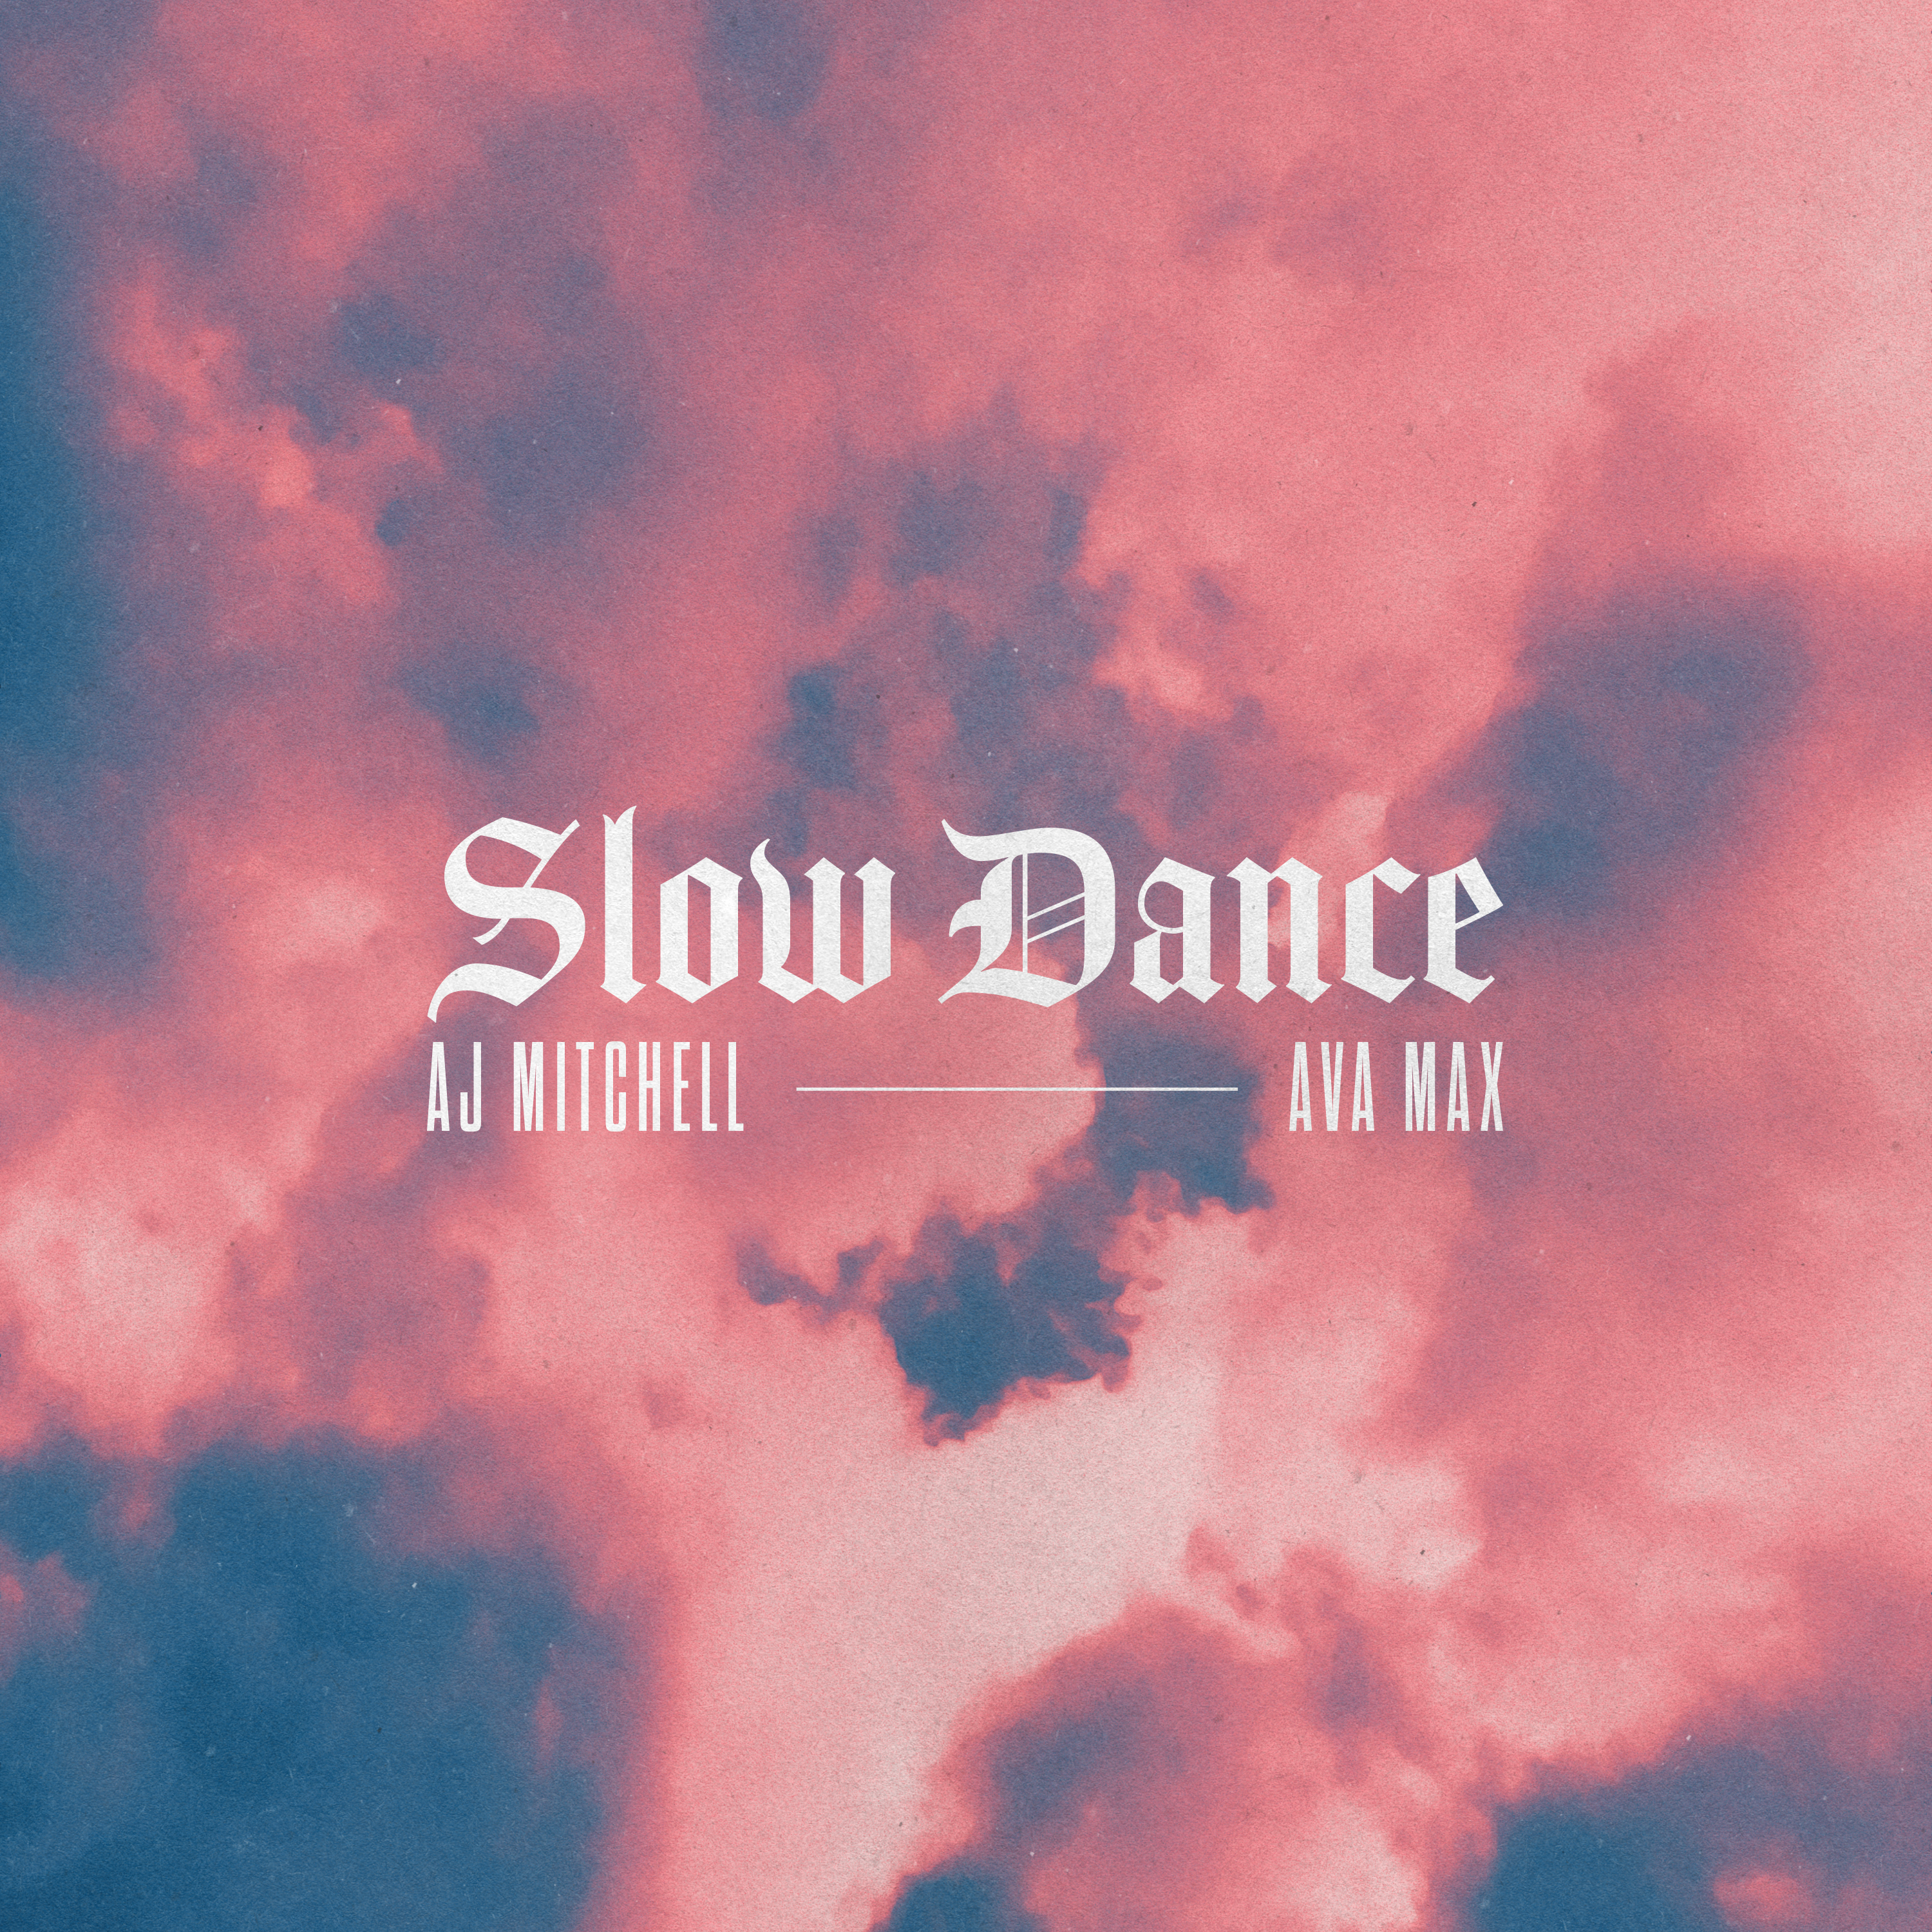 """AJ MITCHELL UNVEILS """"SLOW DANCE"""" FEATURING AVA MAX - Epic Records"""